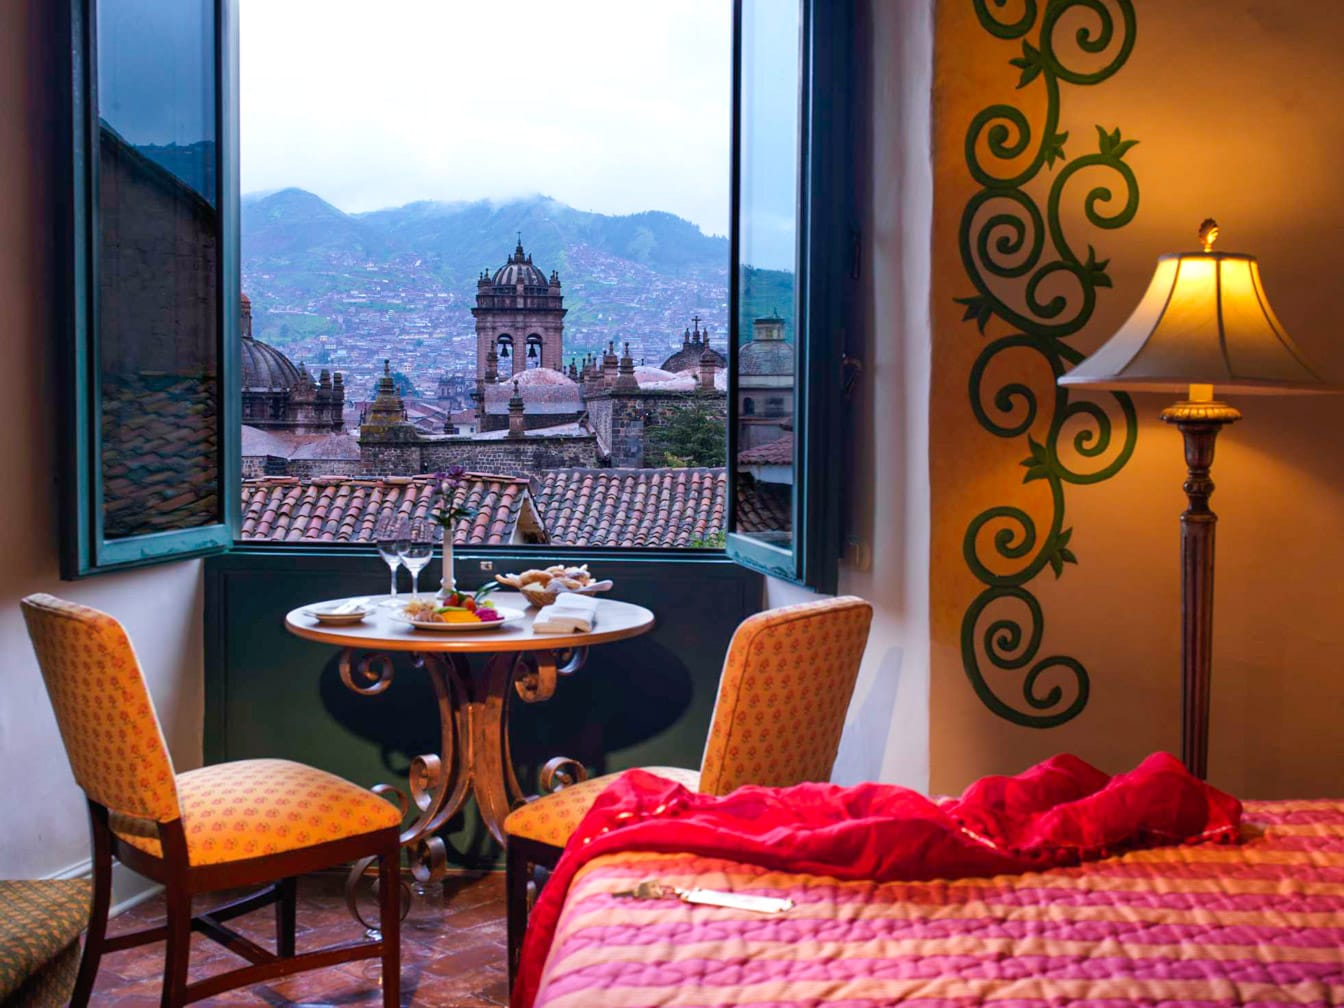 Bedroom with balcony on the Peru: Journey to a Lost World journey